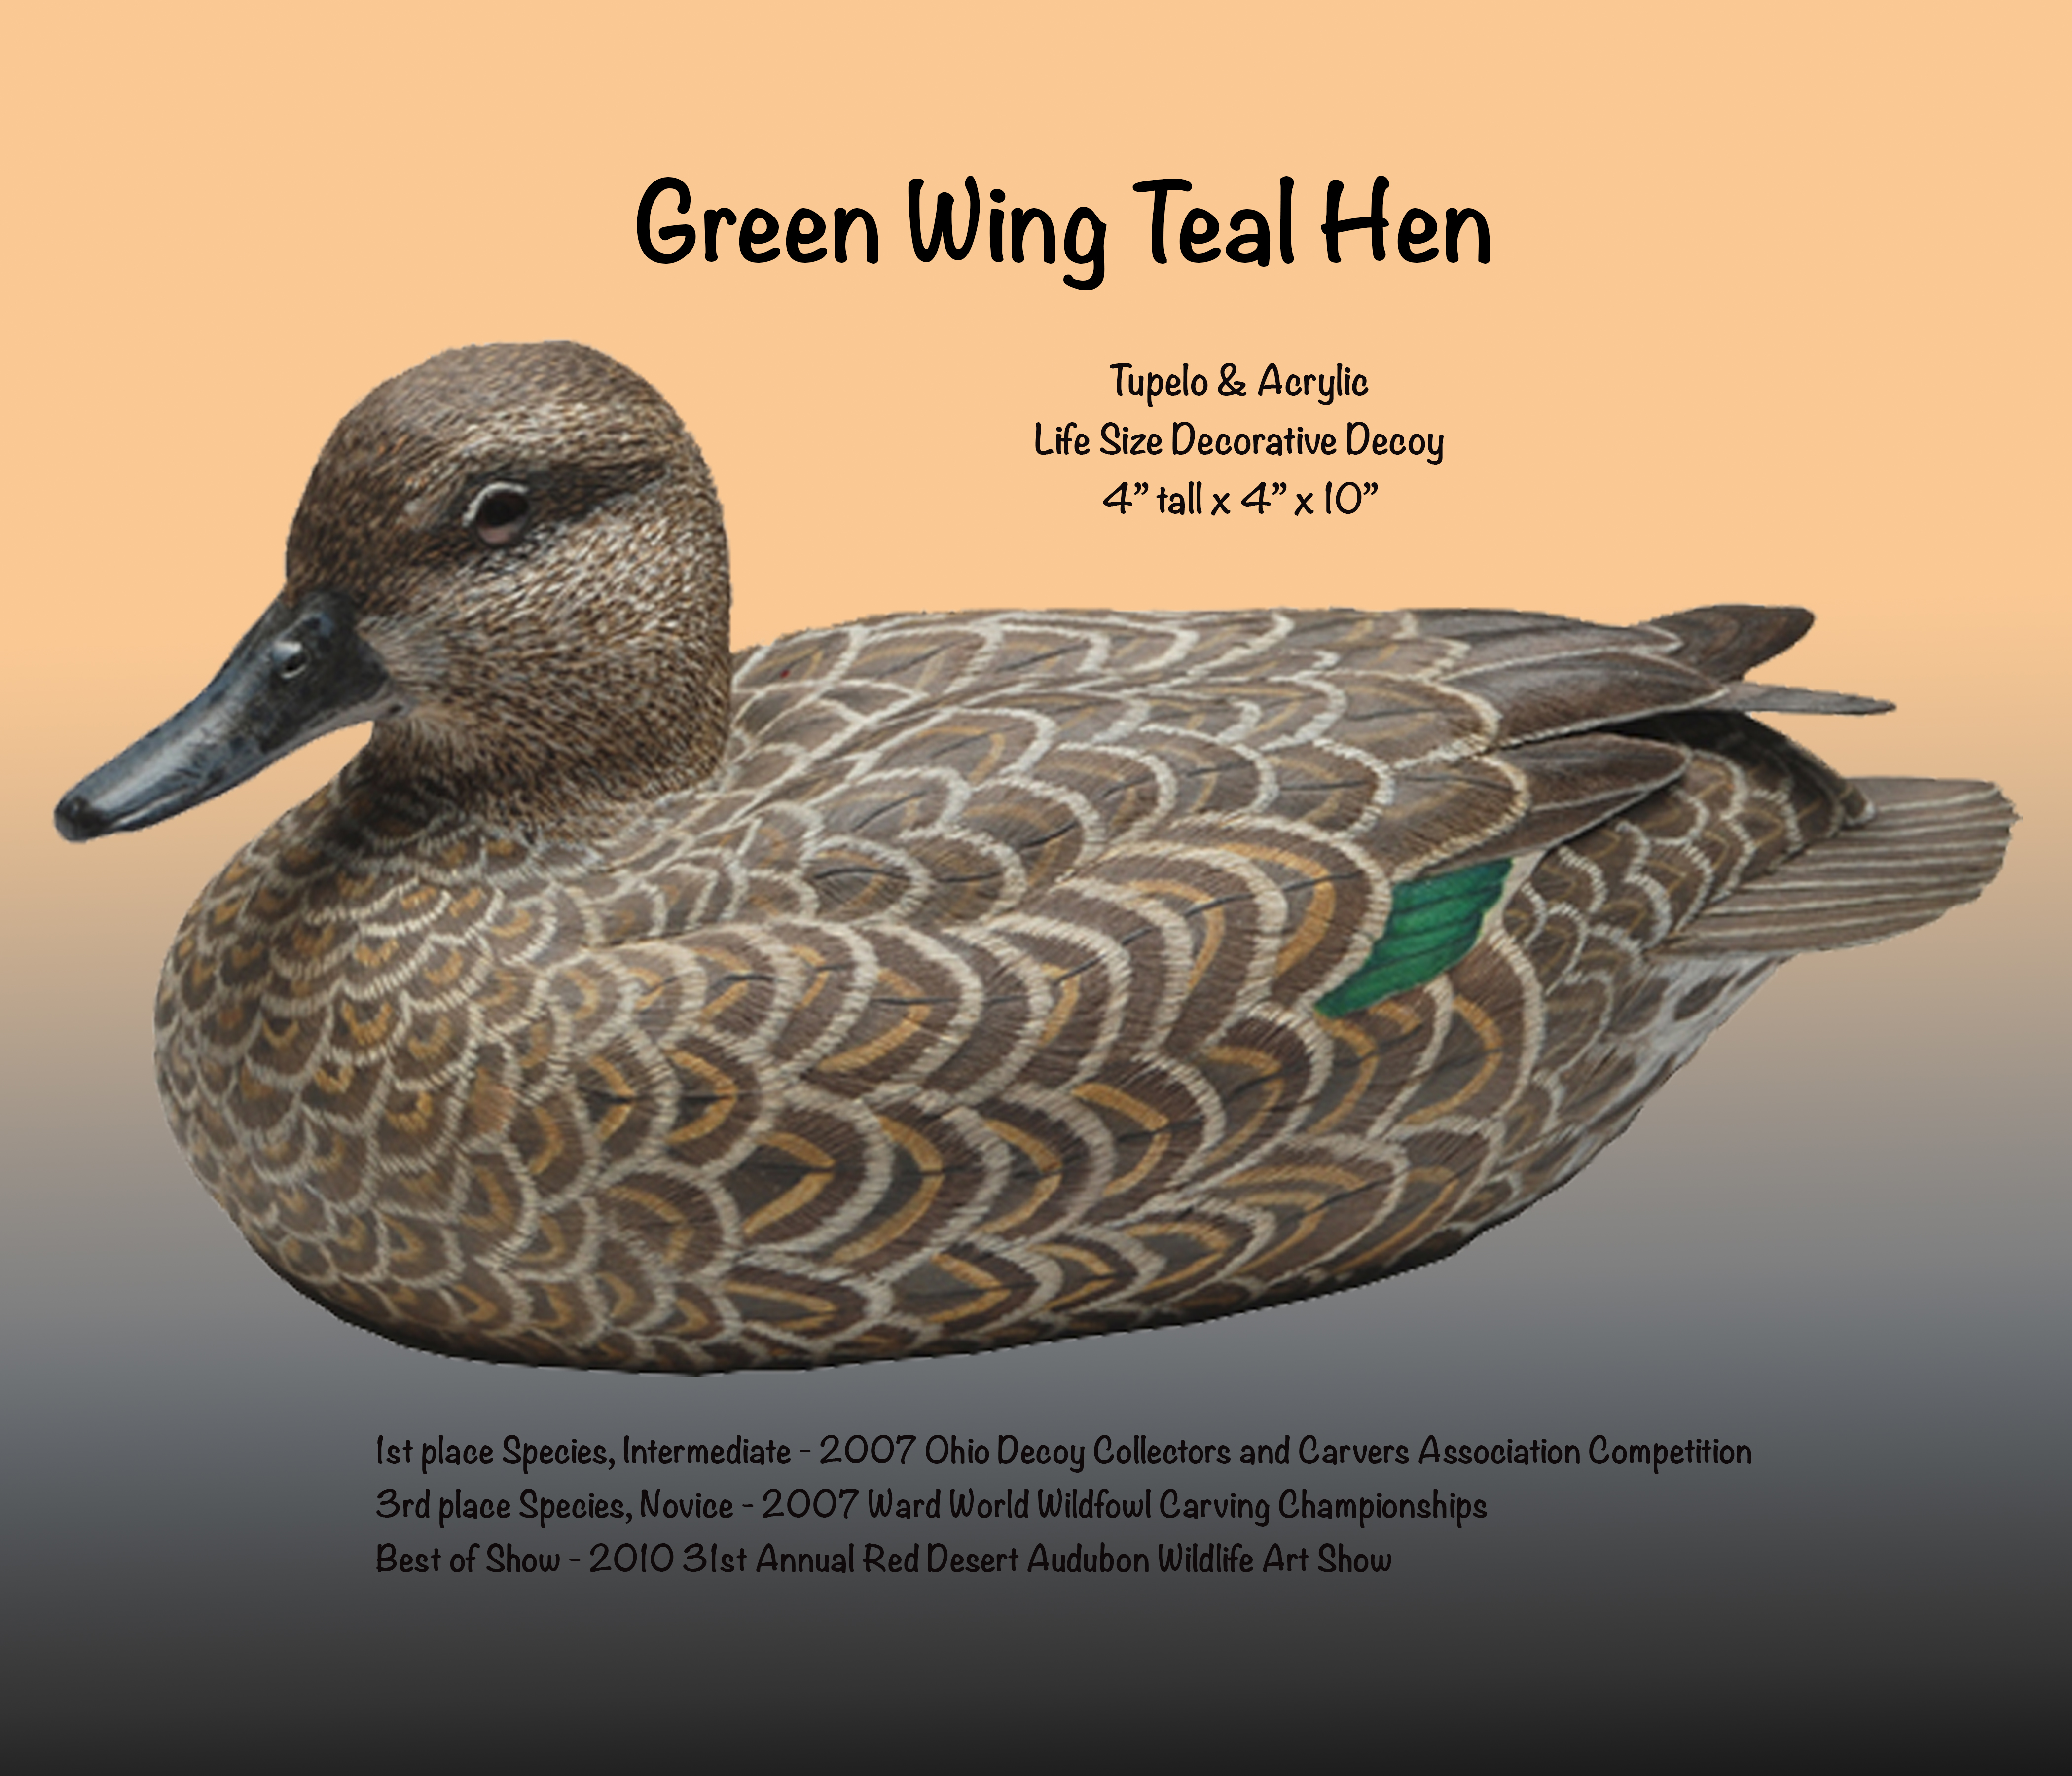 Green Wing Teal Hen